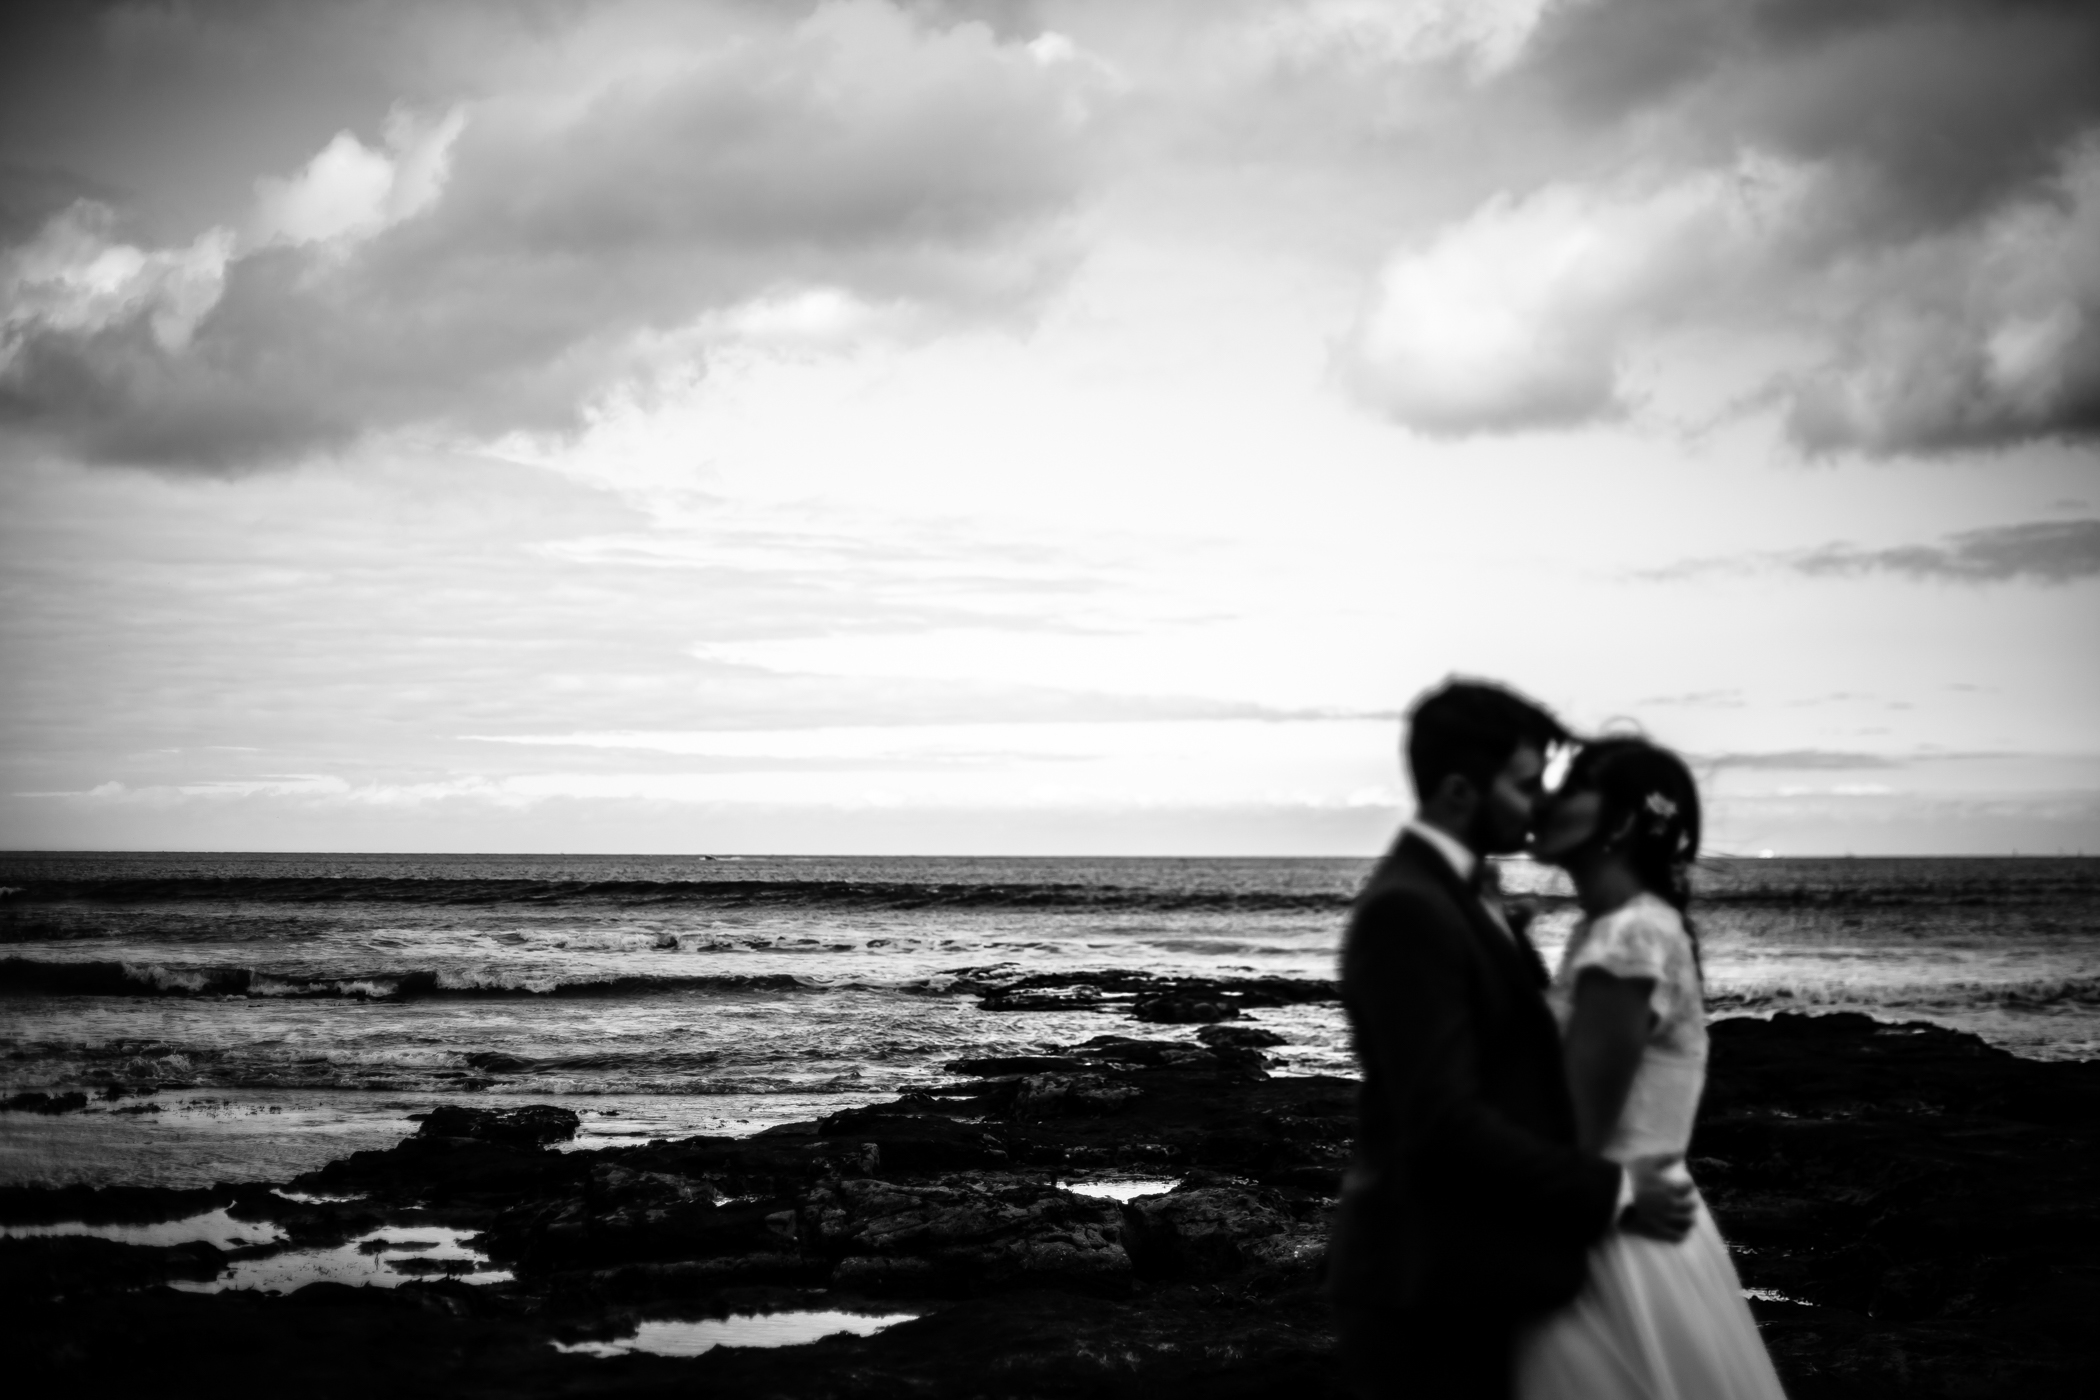 sansom photography beach wedding photography charlotte & mike-16